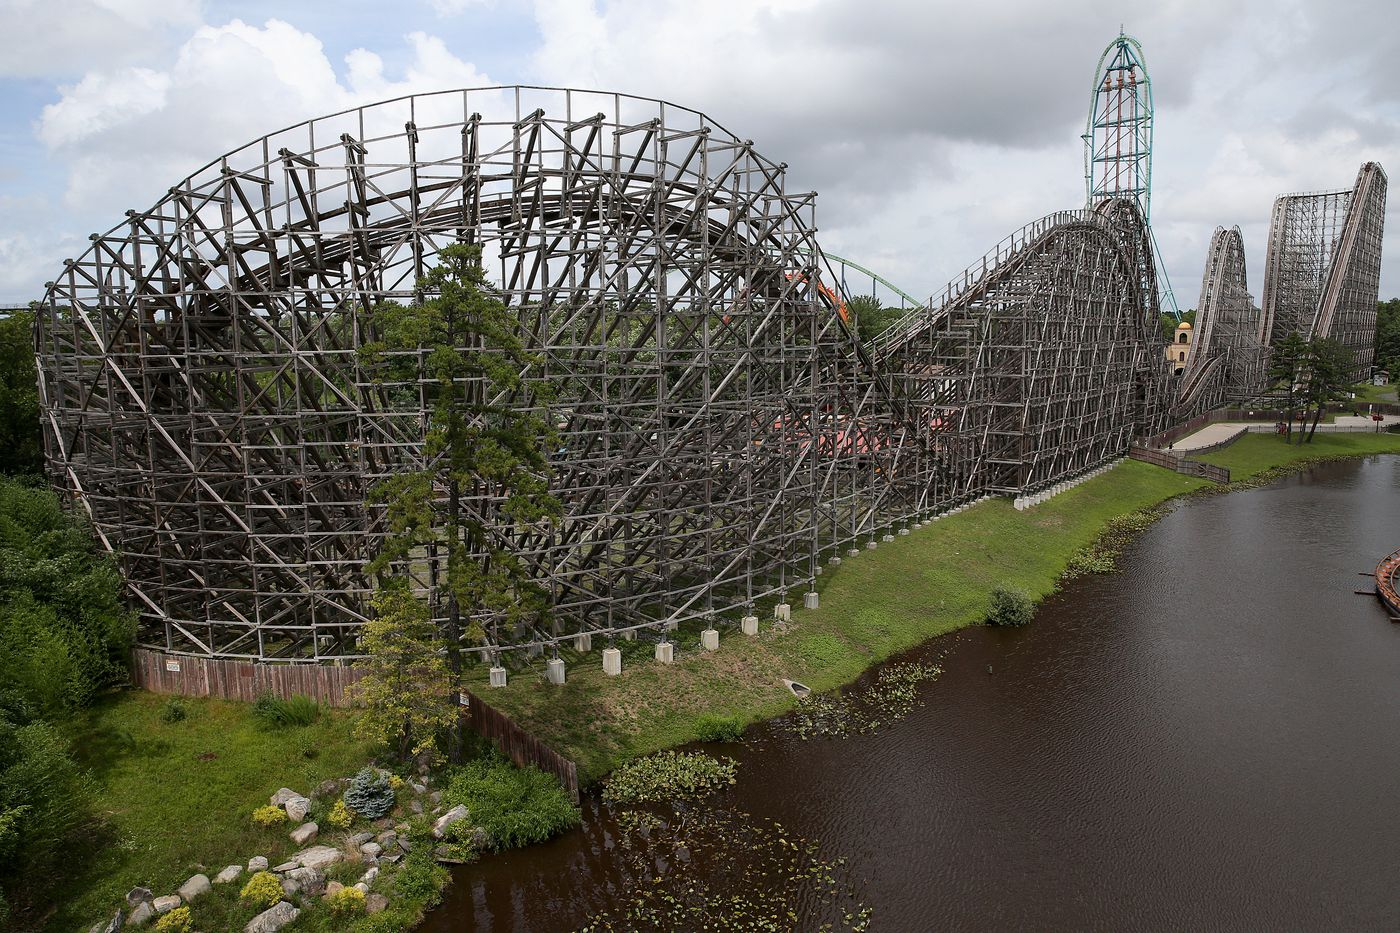 The El Toro roller-coaster at Great Adventure.